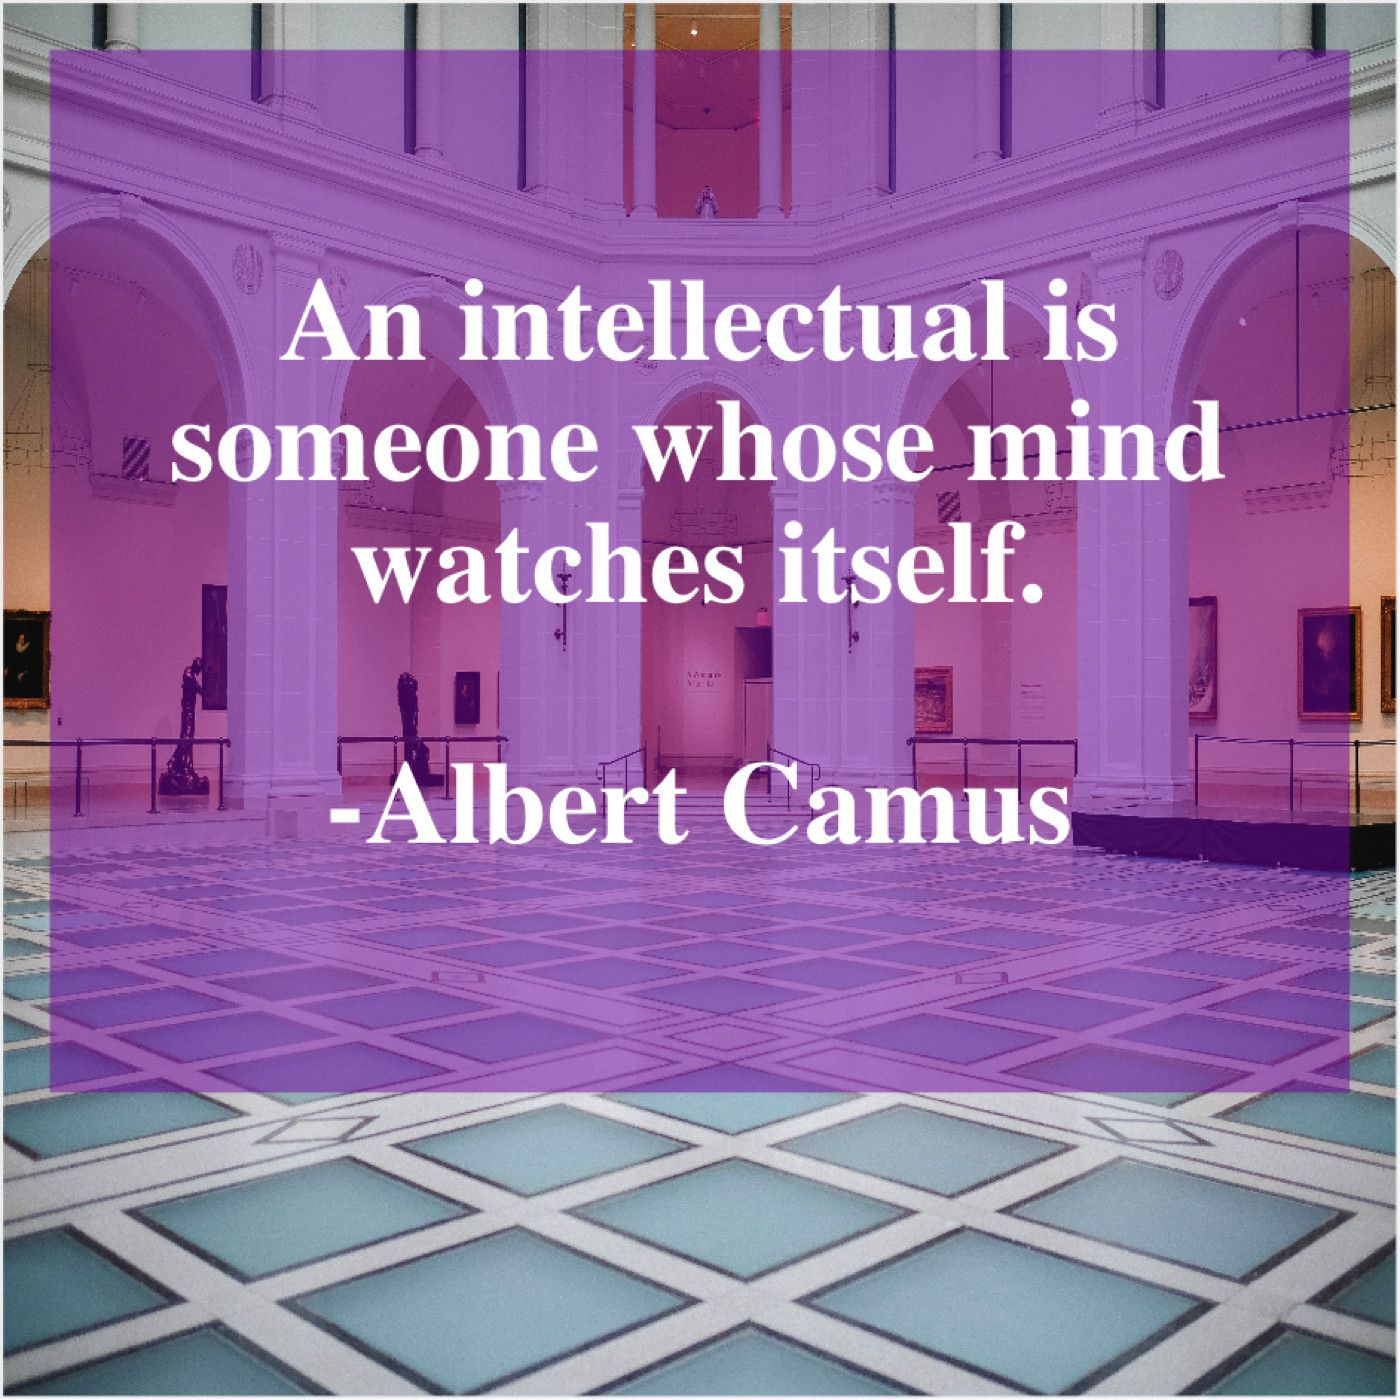 Albert Camus An Intellectual Is Someone Whose Albert Camus Albert Camus Quotes